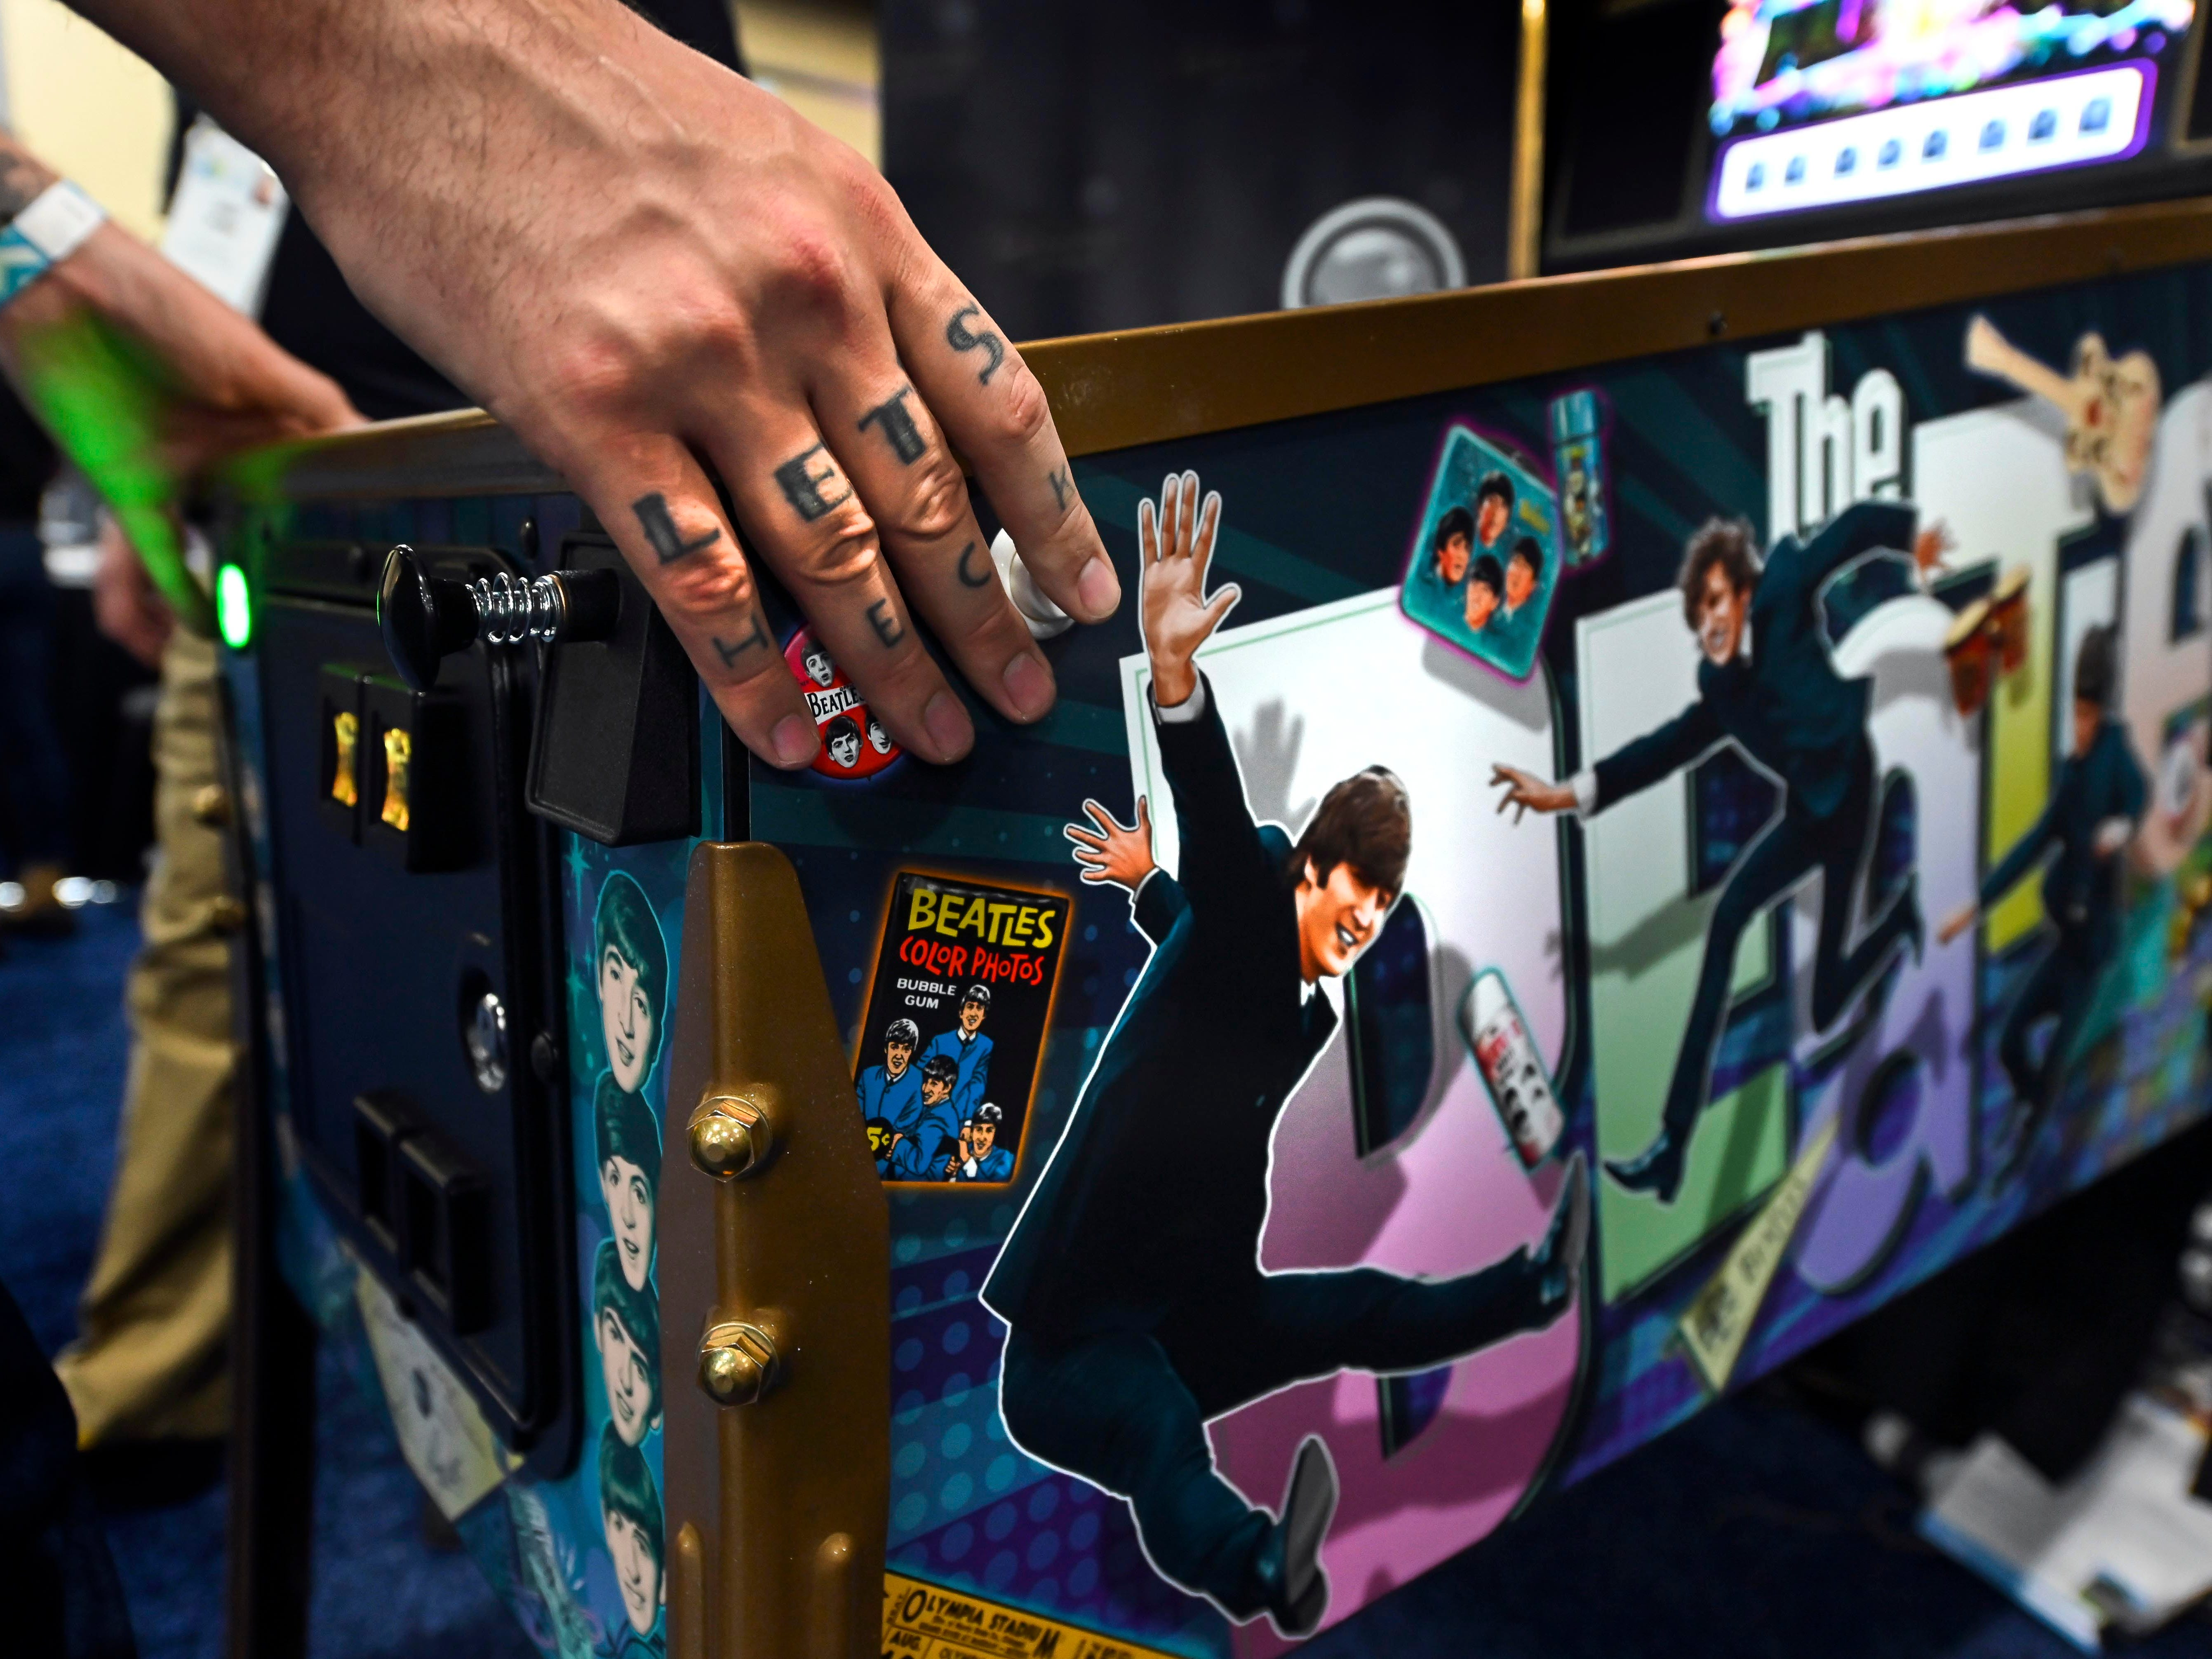 January 6, 2019; Las Vegas, NV, USA;  Jack Danger plays Stern Pinball's latest game based on The Beatles at CES Unveiled, a media preview event at the Mandalay Bay Convention Center. The pinball machine features nine hit Beatles song plus audio from John, Paul, George and Ringo. Mandatory Credit: Robert Hanashiro- USA TODAY NETWORK ORIG FILE ID:  20190106_ajw_usa_975.jpg